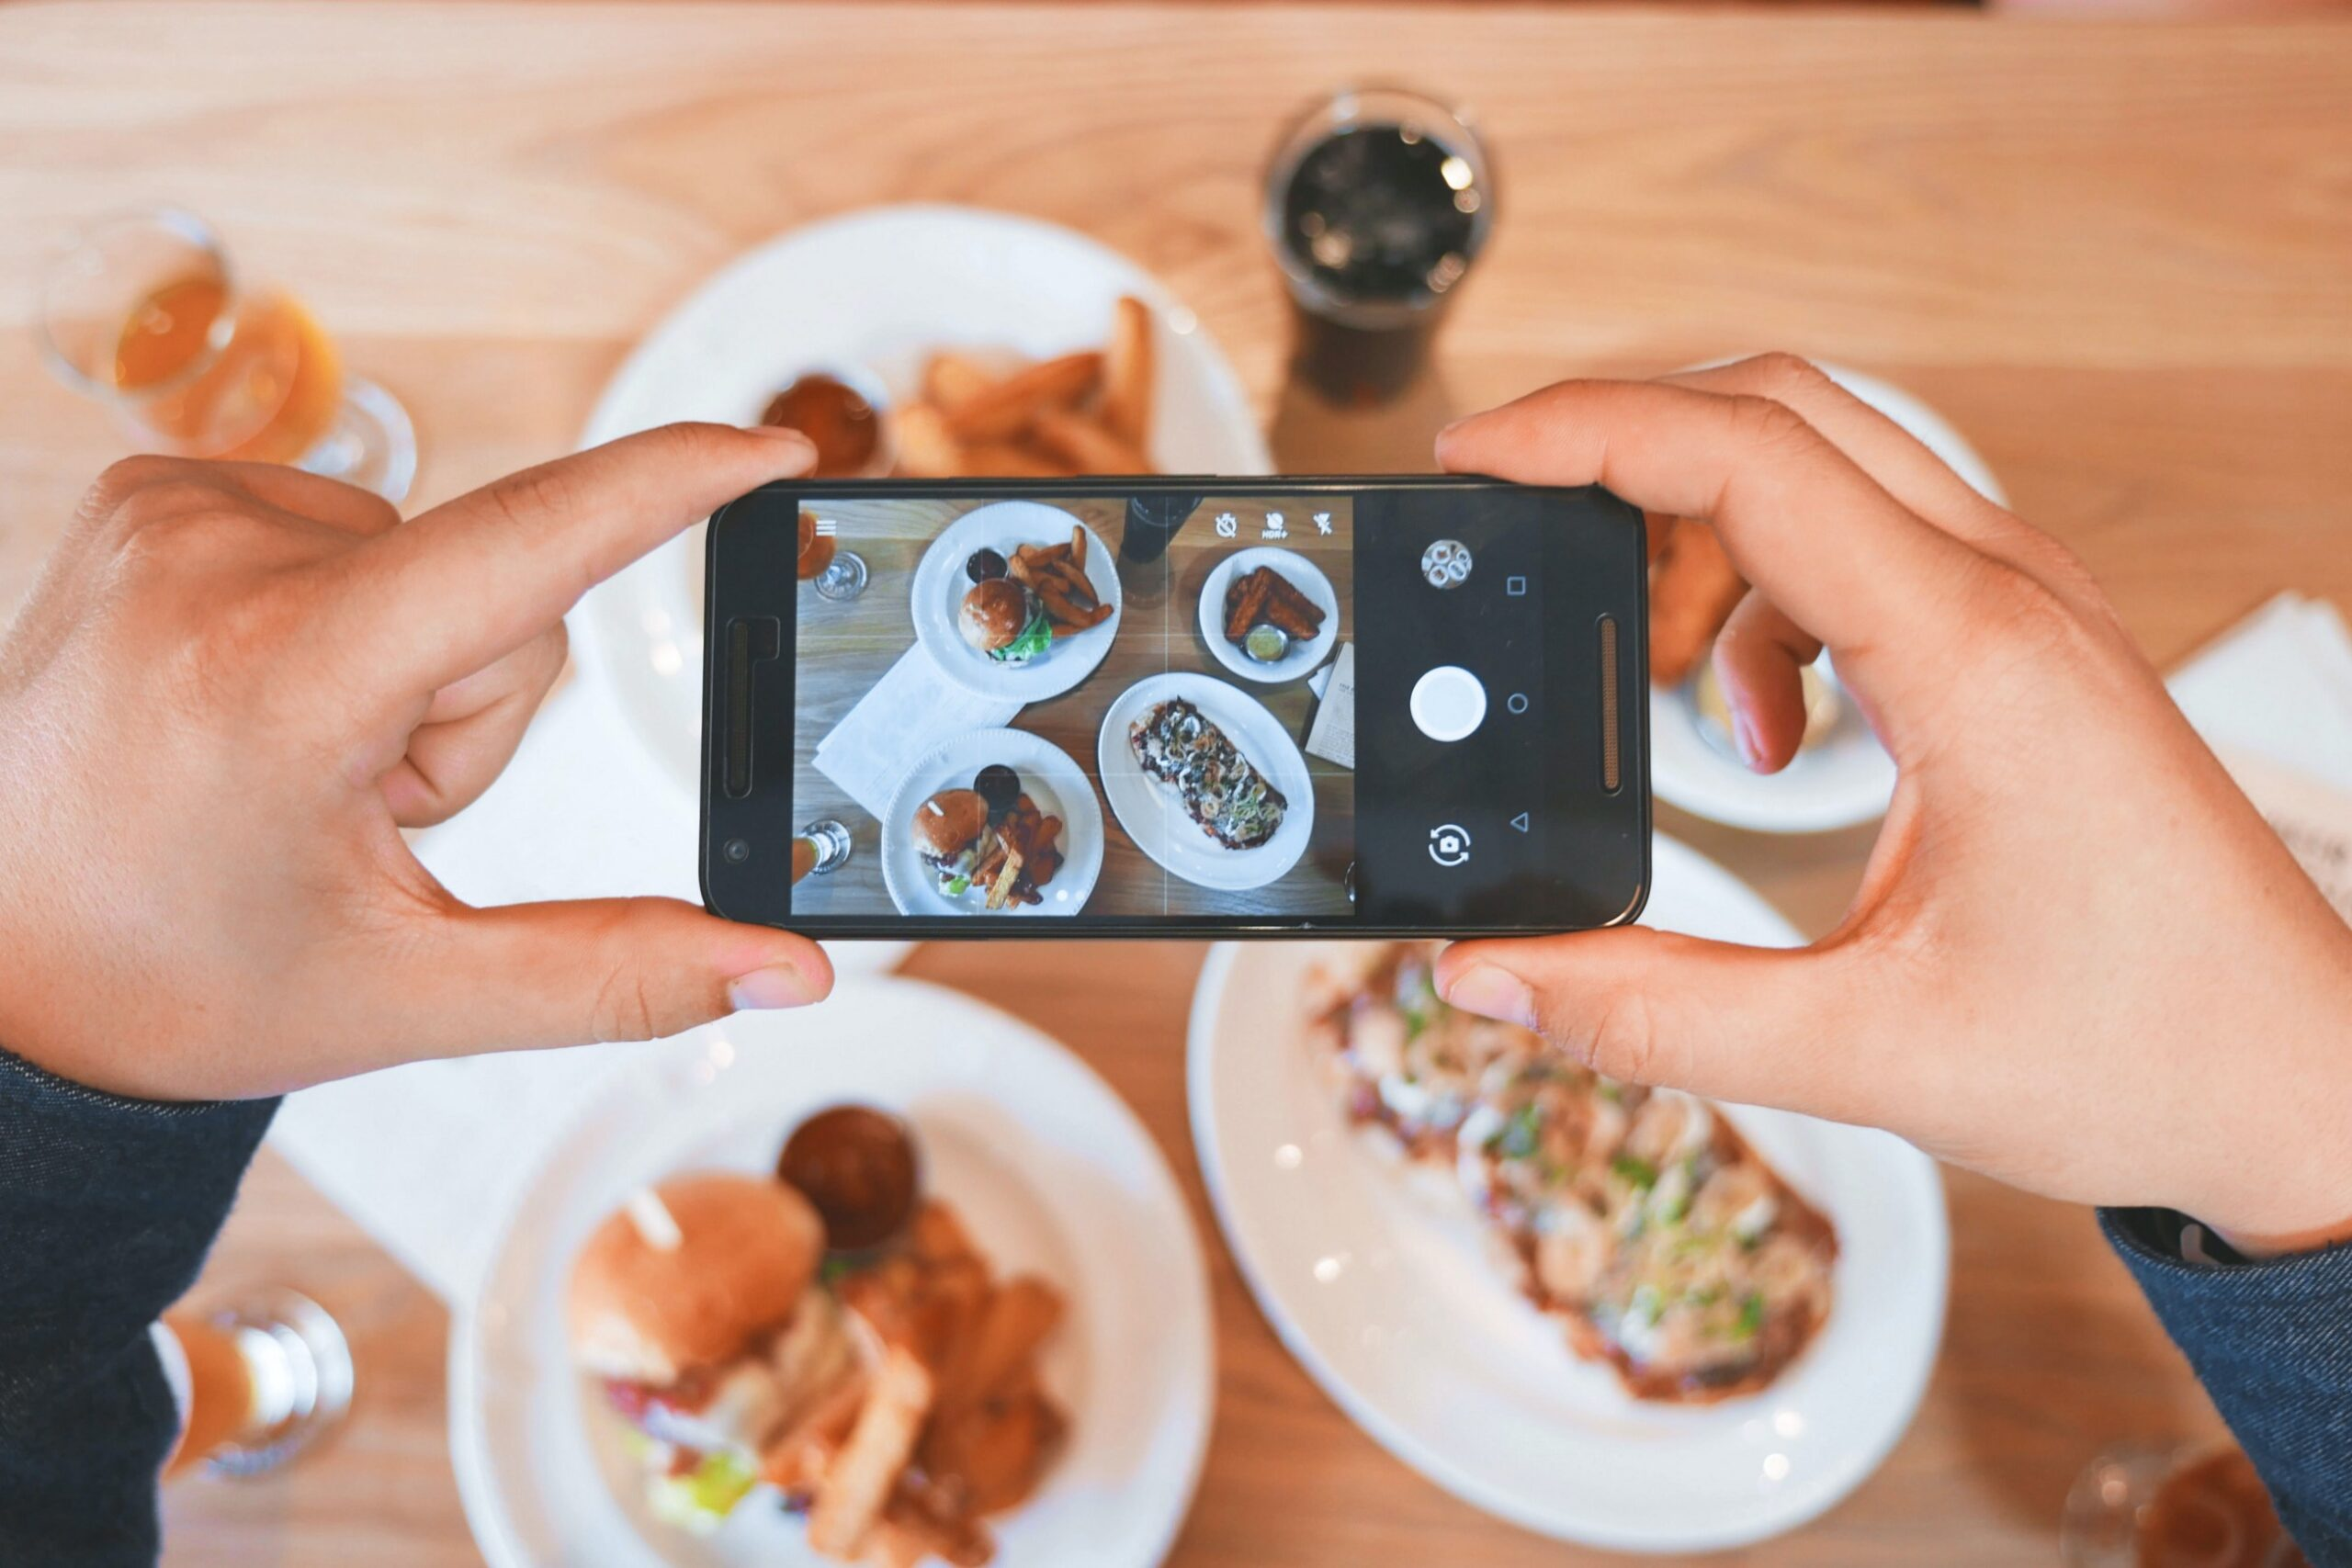 3 Reasons Why I Don't Post My Personal Life on Social Media